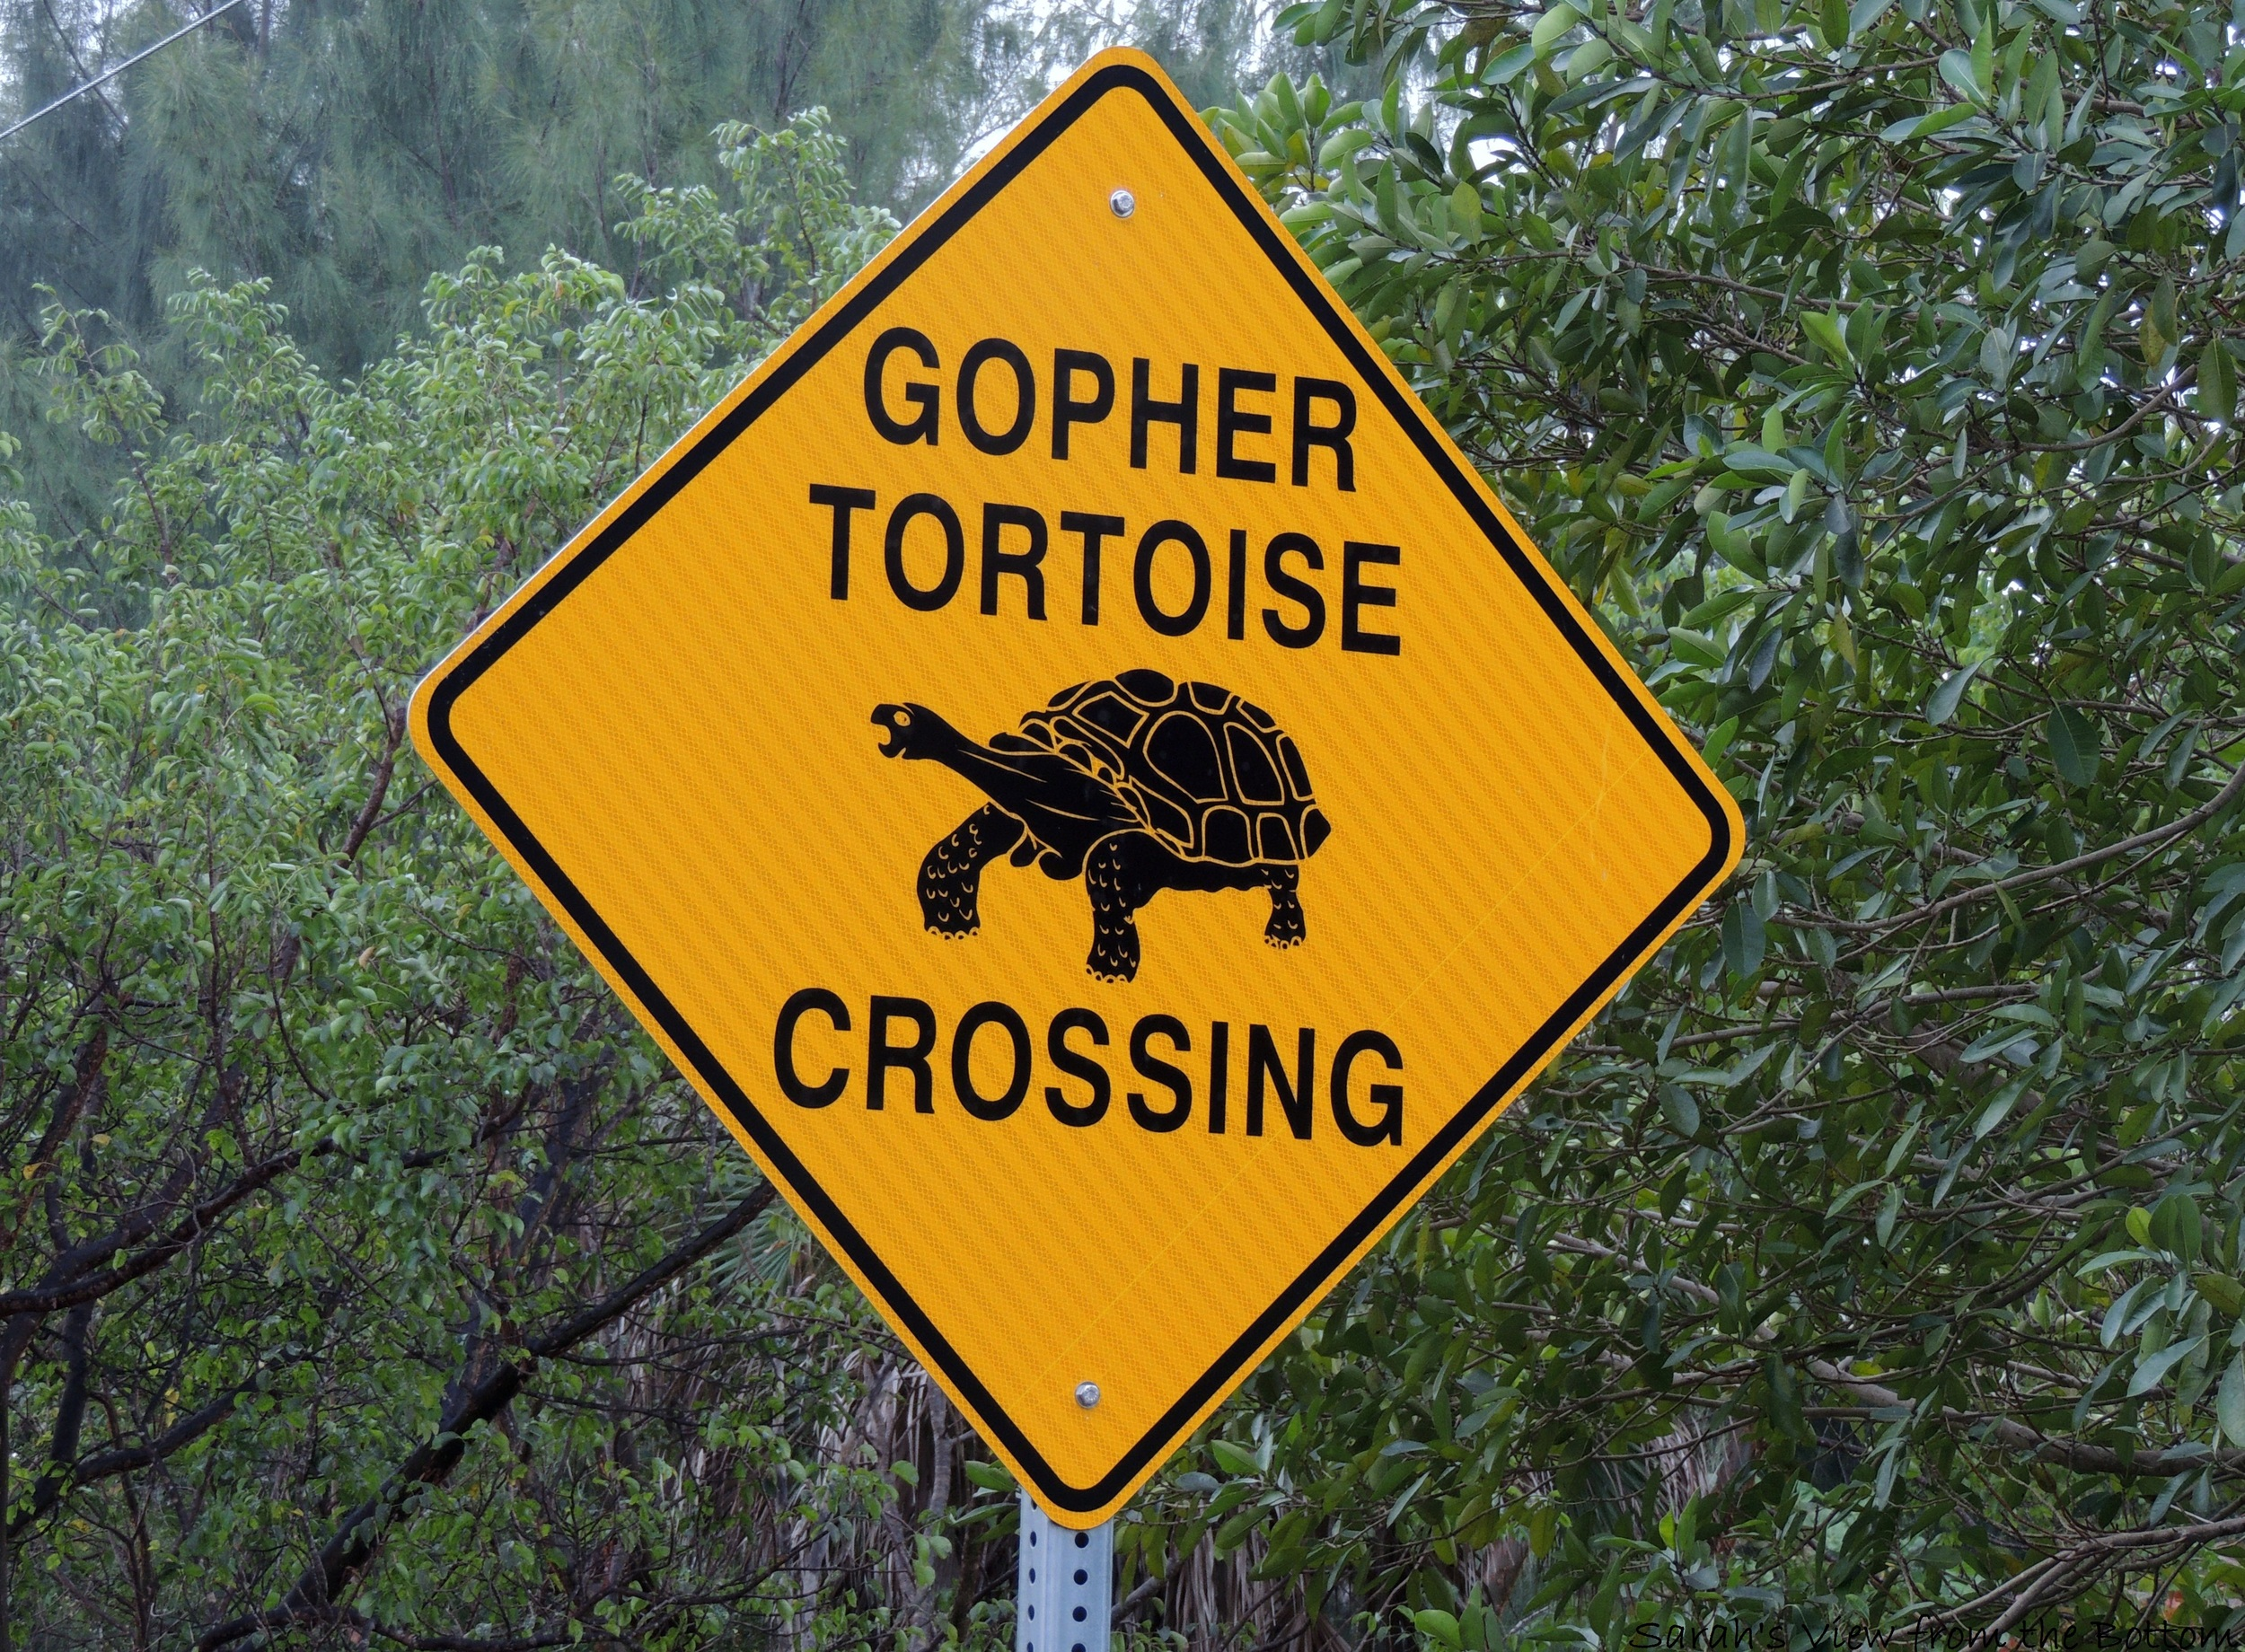 You may have snapped a photo of these road signs during your visit to Sanibel - an important warning to drivers indicating gopher tortoises may be nearby!